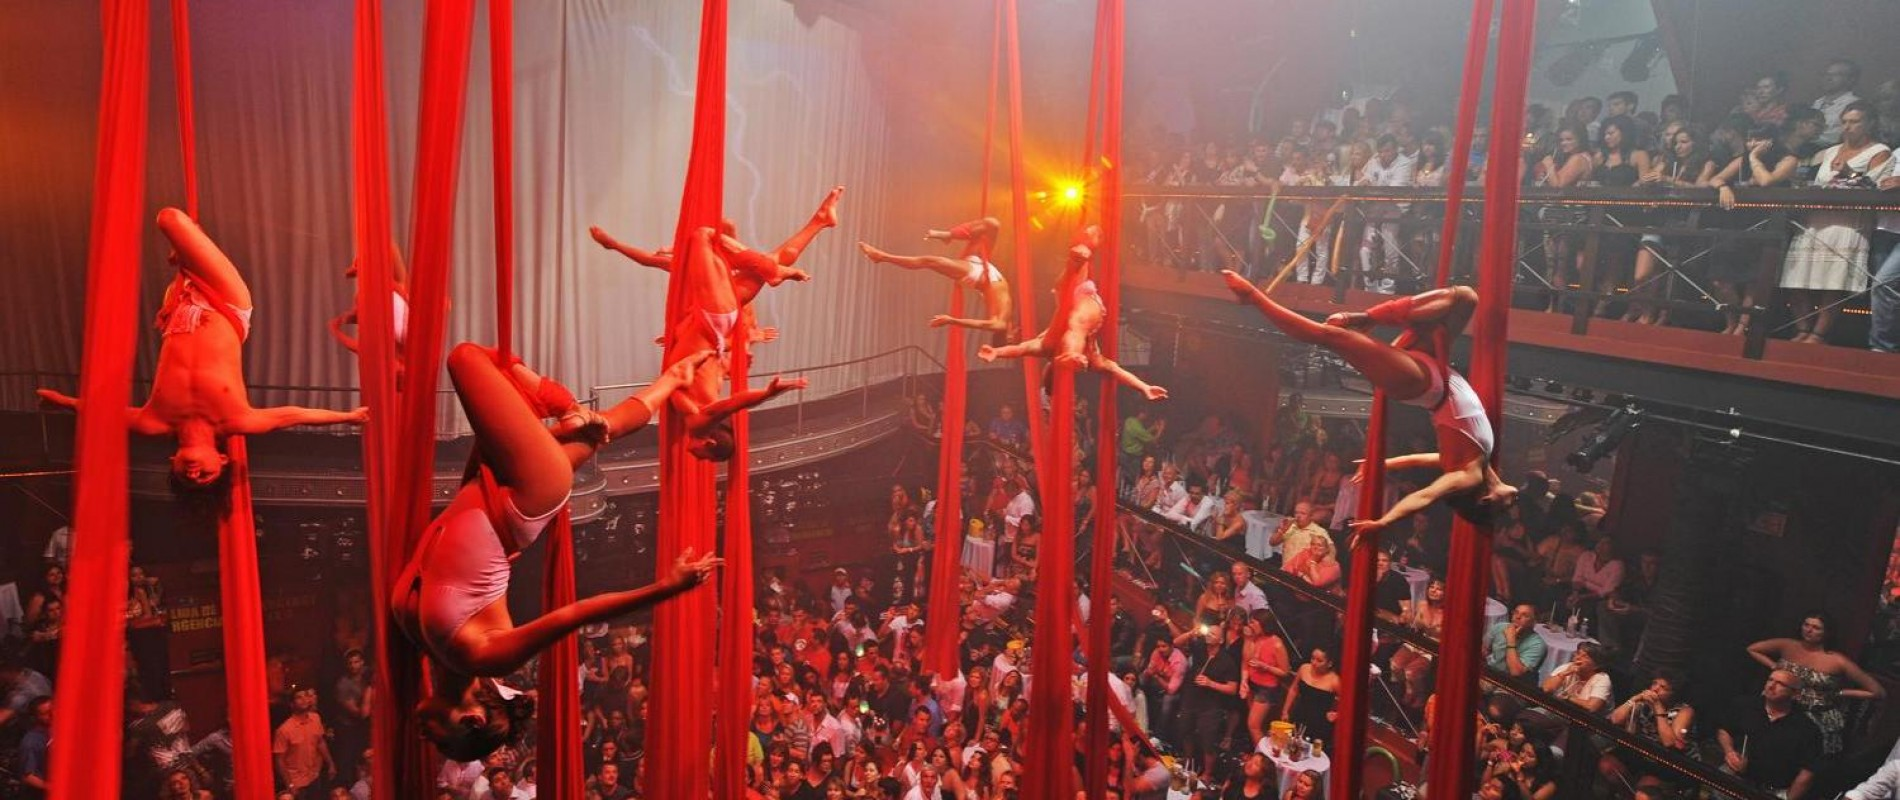 Coco Bongo had Cirque du Soleil type performers who would do their thing right in the middle of everything.